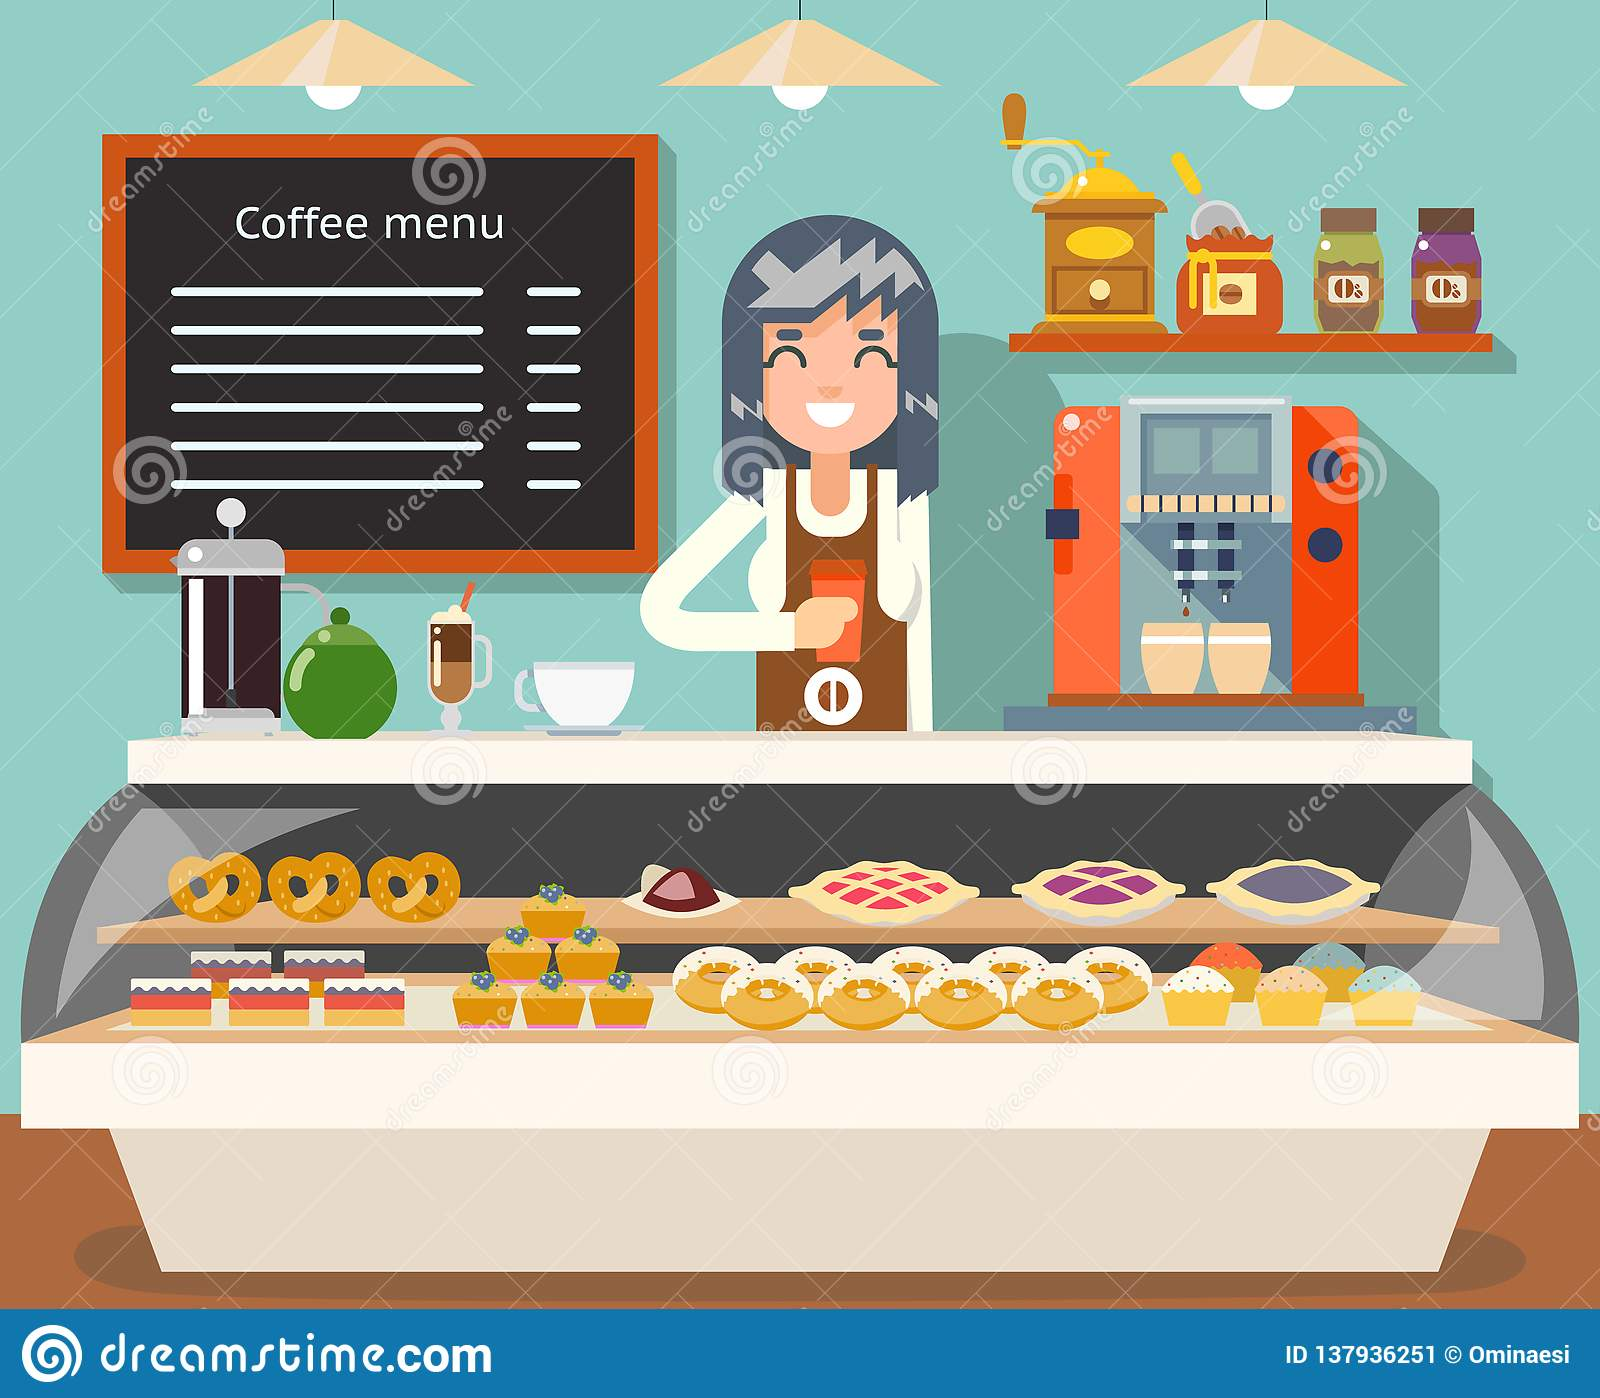 hight resolution of cafe coffee shop woman business interior female seller bakery taste sweets flat design vector illustration